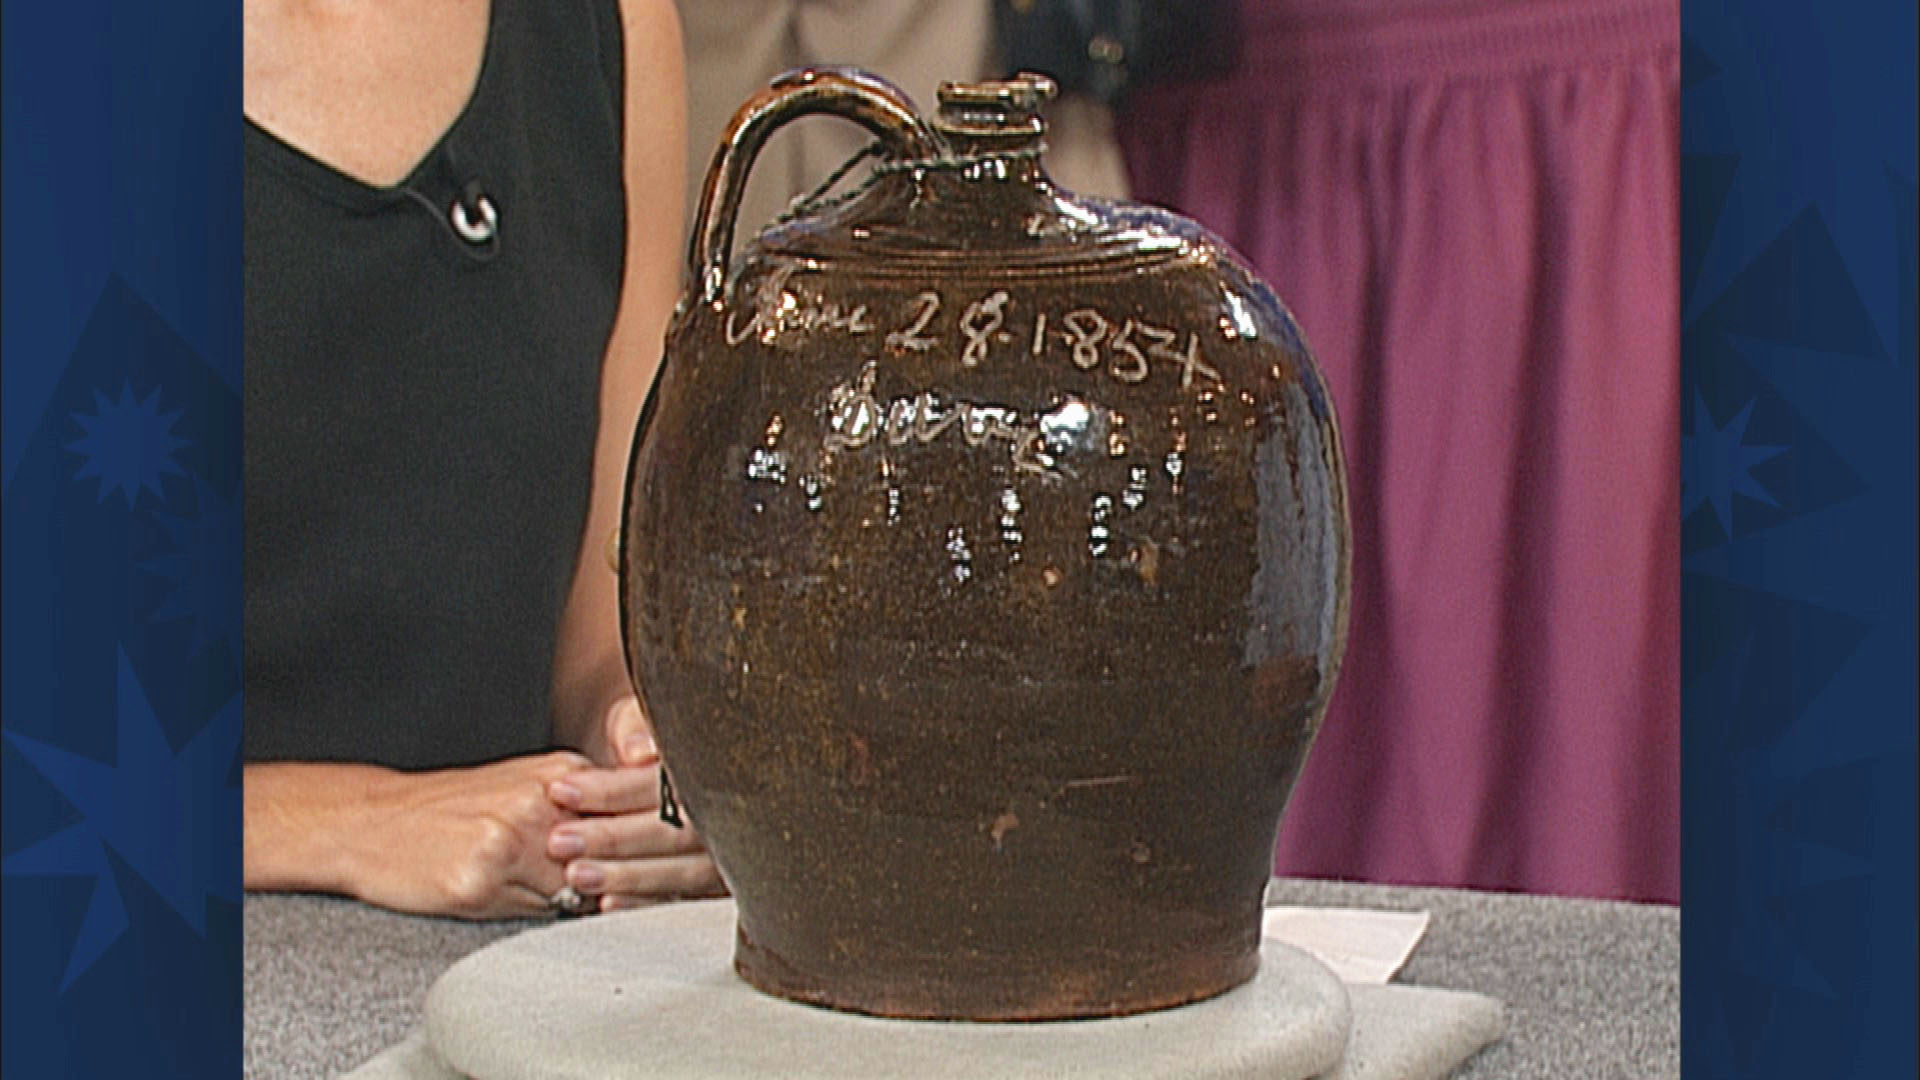 https://www-tc.pbs.org/prod-media/antiques-roadshow/article/images/Dave-the-Potter-200003A33A-1920x1080.jpg